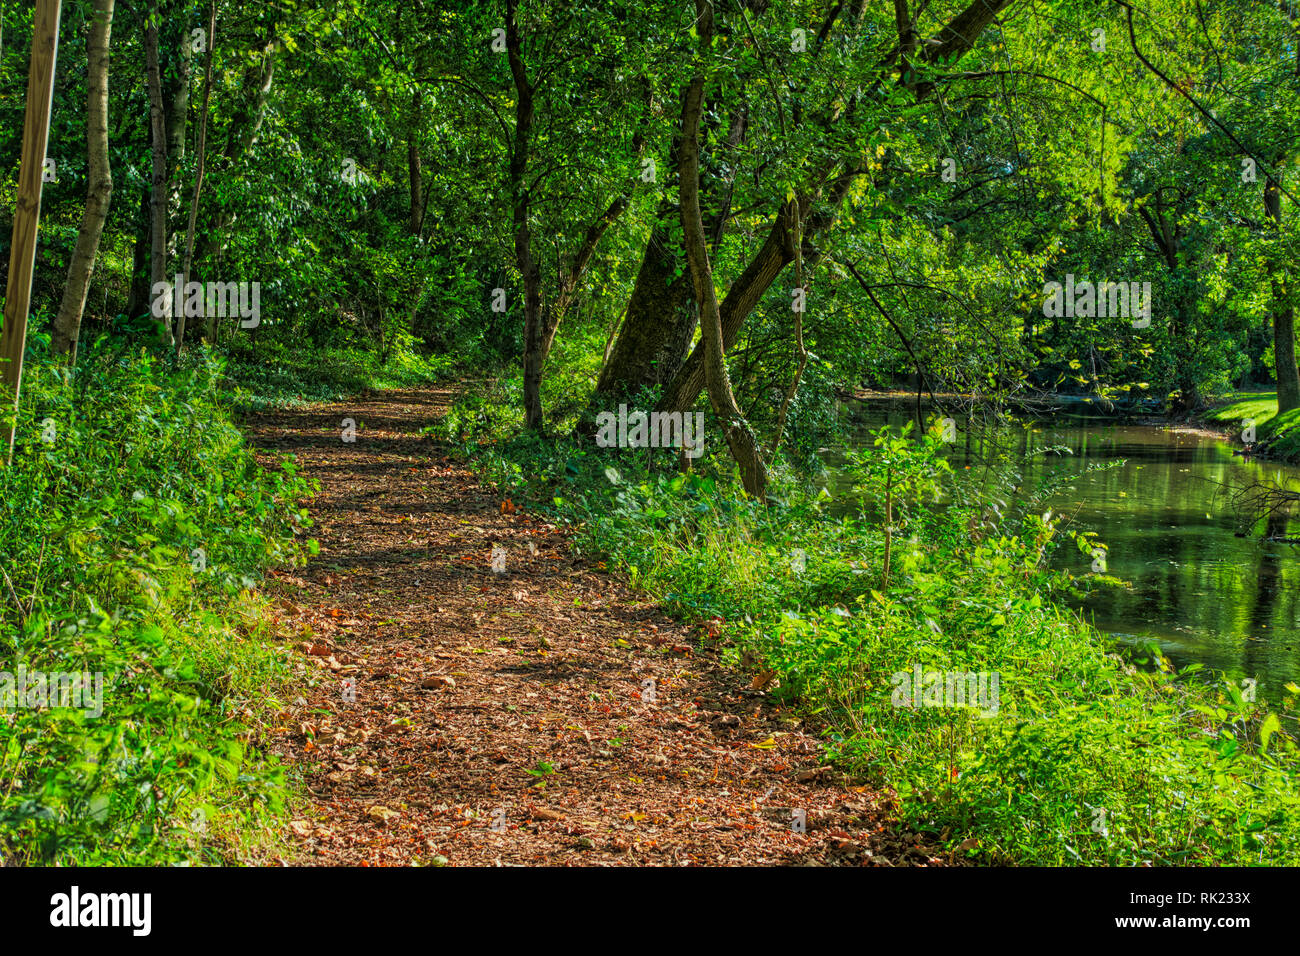 Natures Beauty Shines Through A Stream Pathway Stock Photo Alamy